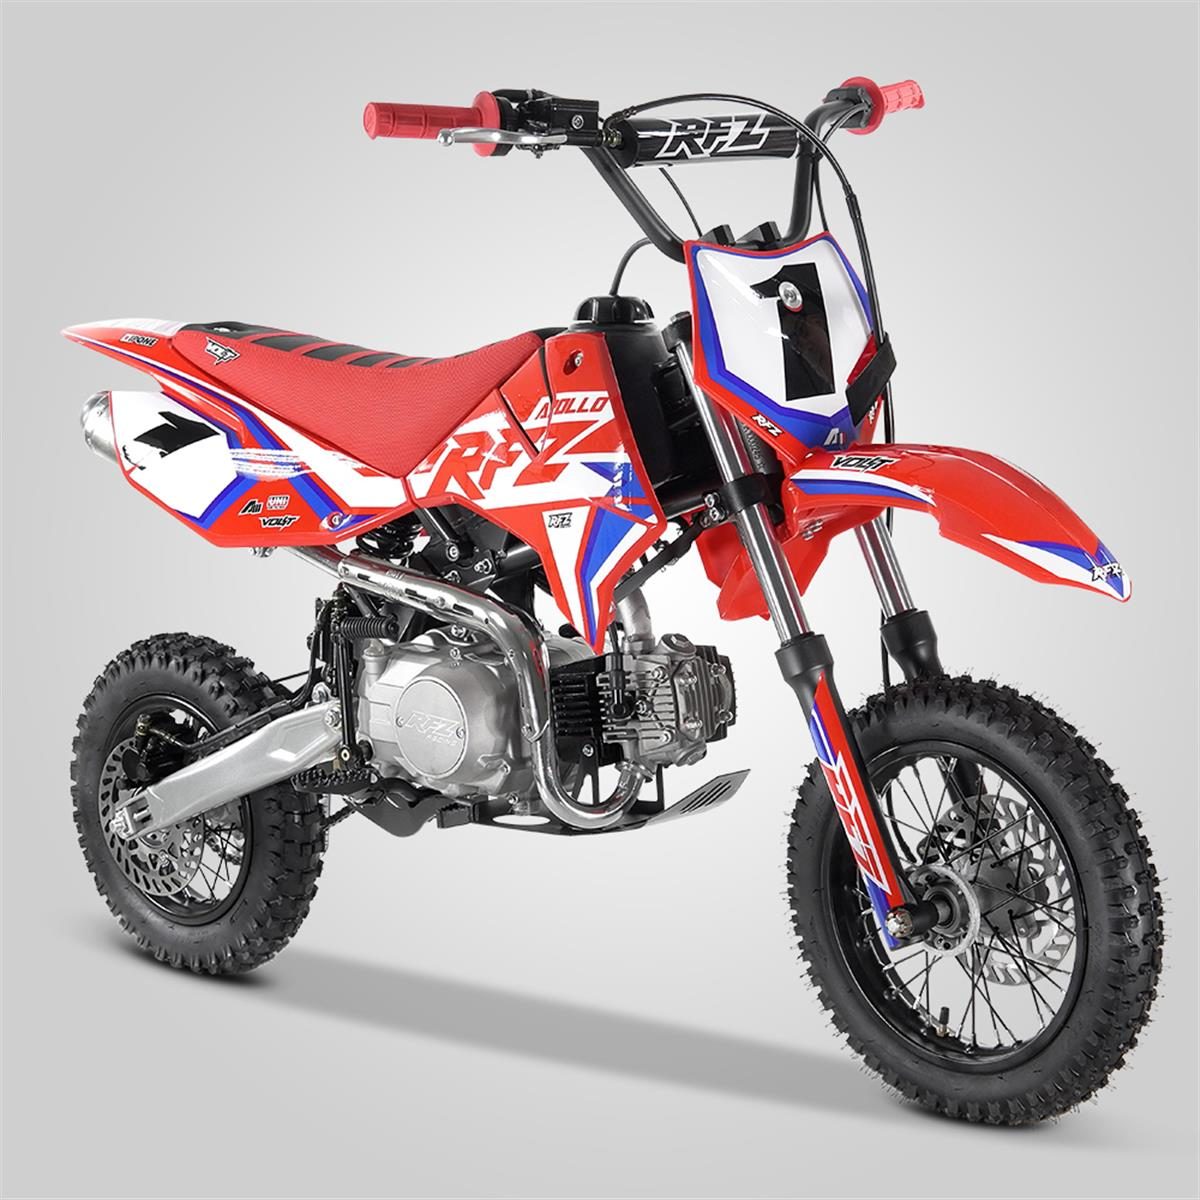 DIRT BIKE APOLLO RFZ ROOKIE 110CC SEMI AUTO 10/12 POUCES 2021